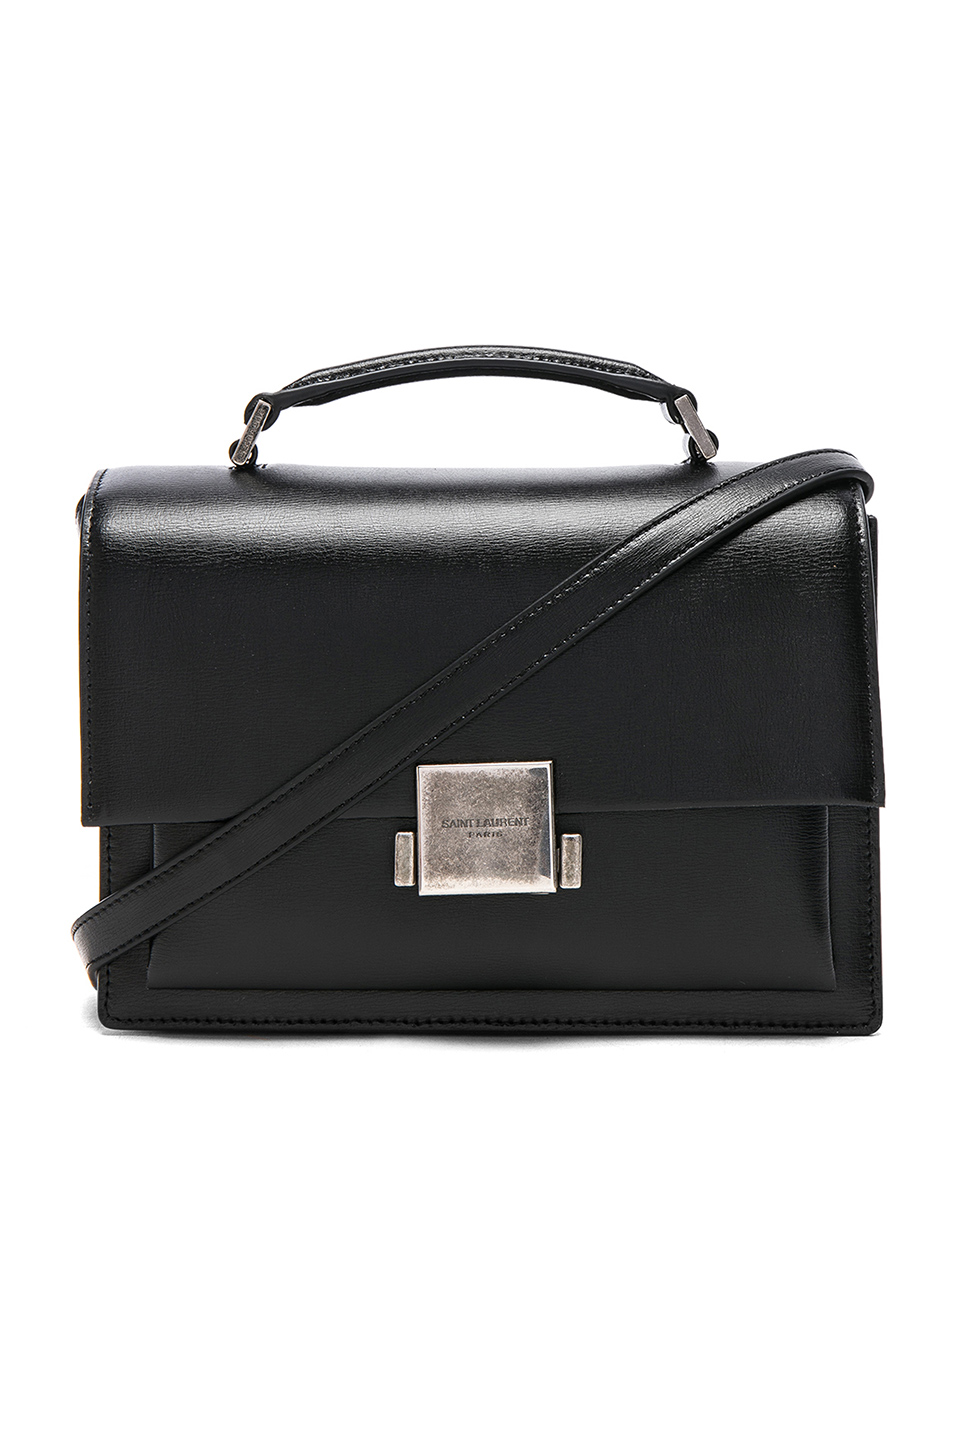 Medium Bellechasse Bag by Saint Laurent, available on fwrd.com for $1890 Olivia Culpo Bags Exact Product